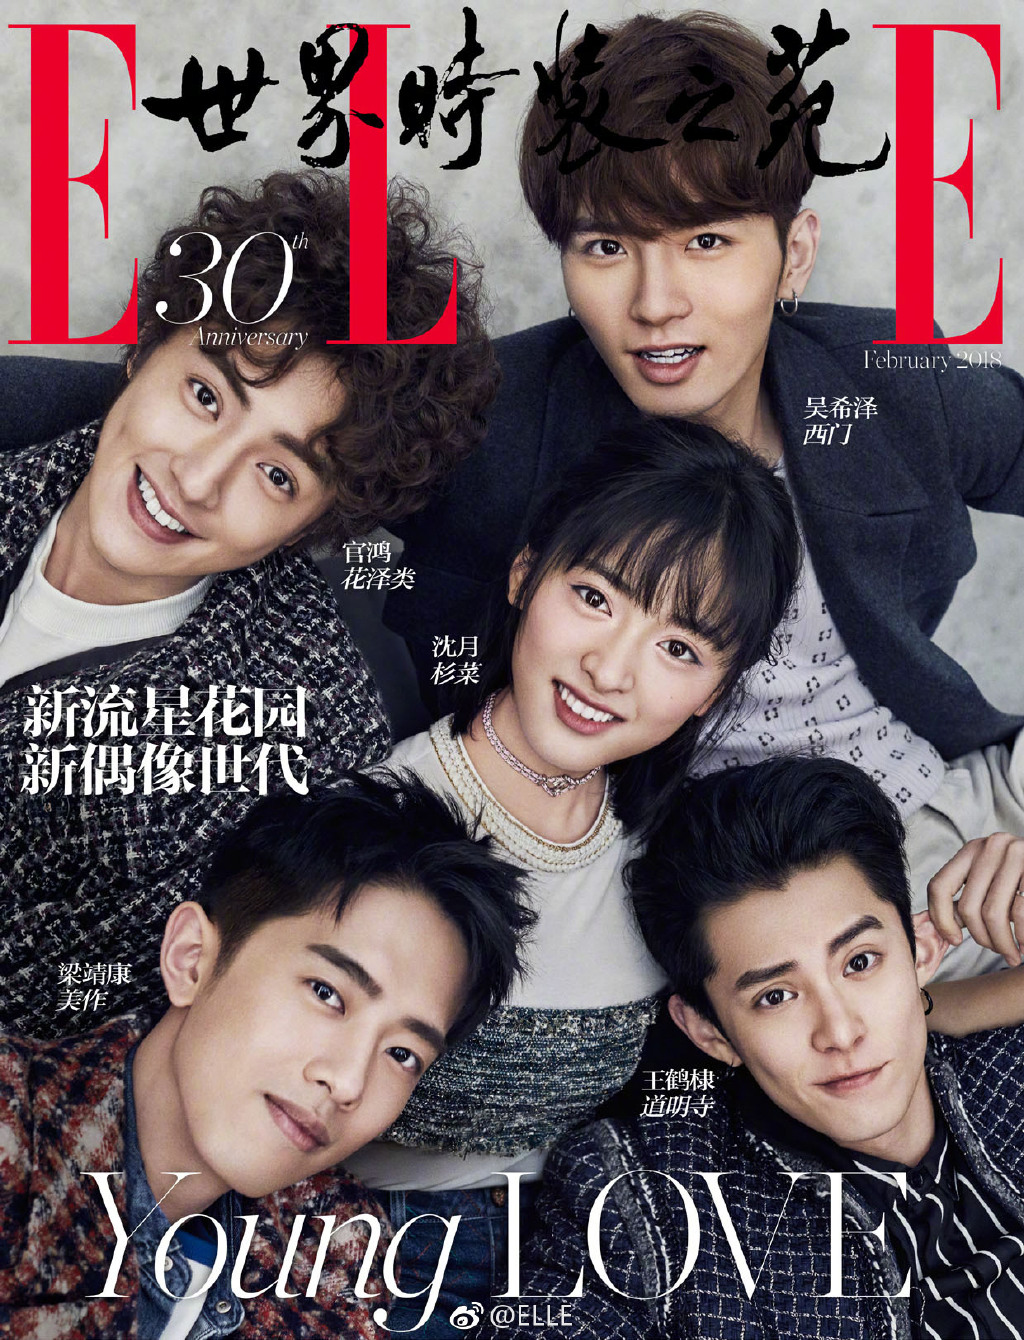 Shen Yue together with F4 in their first group pictorial ...